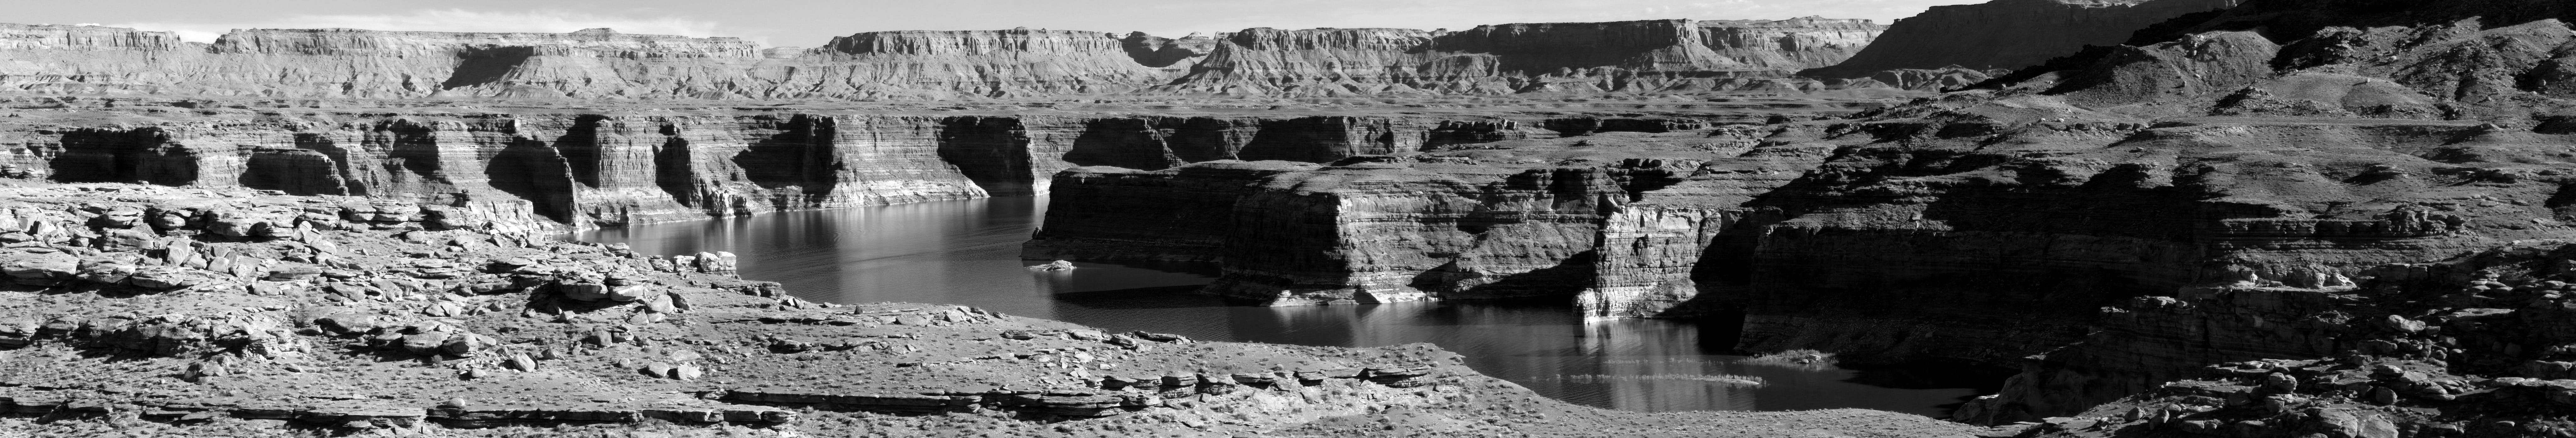 Grayscale Photo Of Canyon